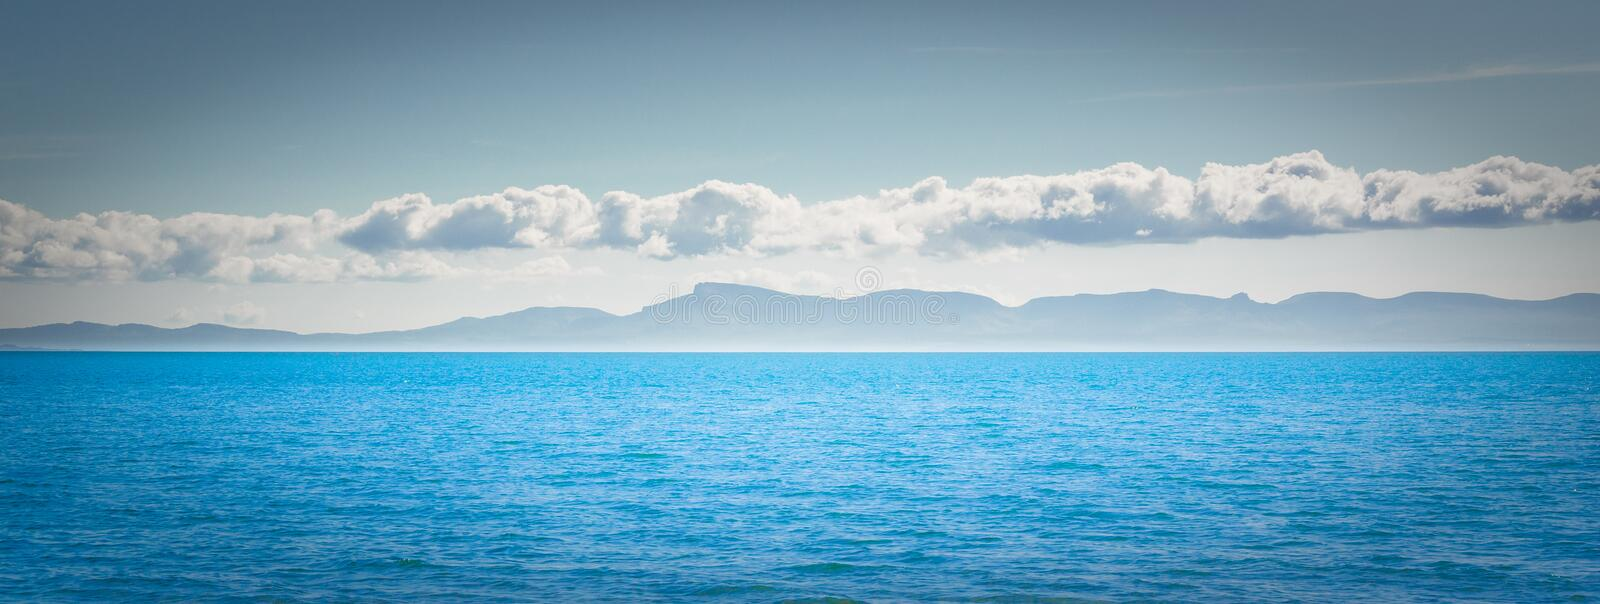 Mountains and ocean around Isle of Skye. Panorama - landscape royalty free stock images